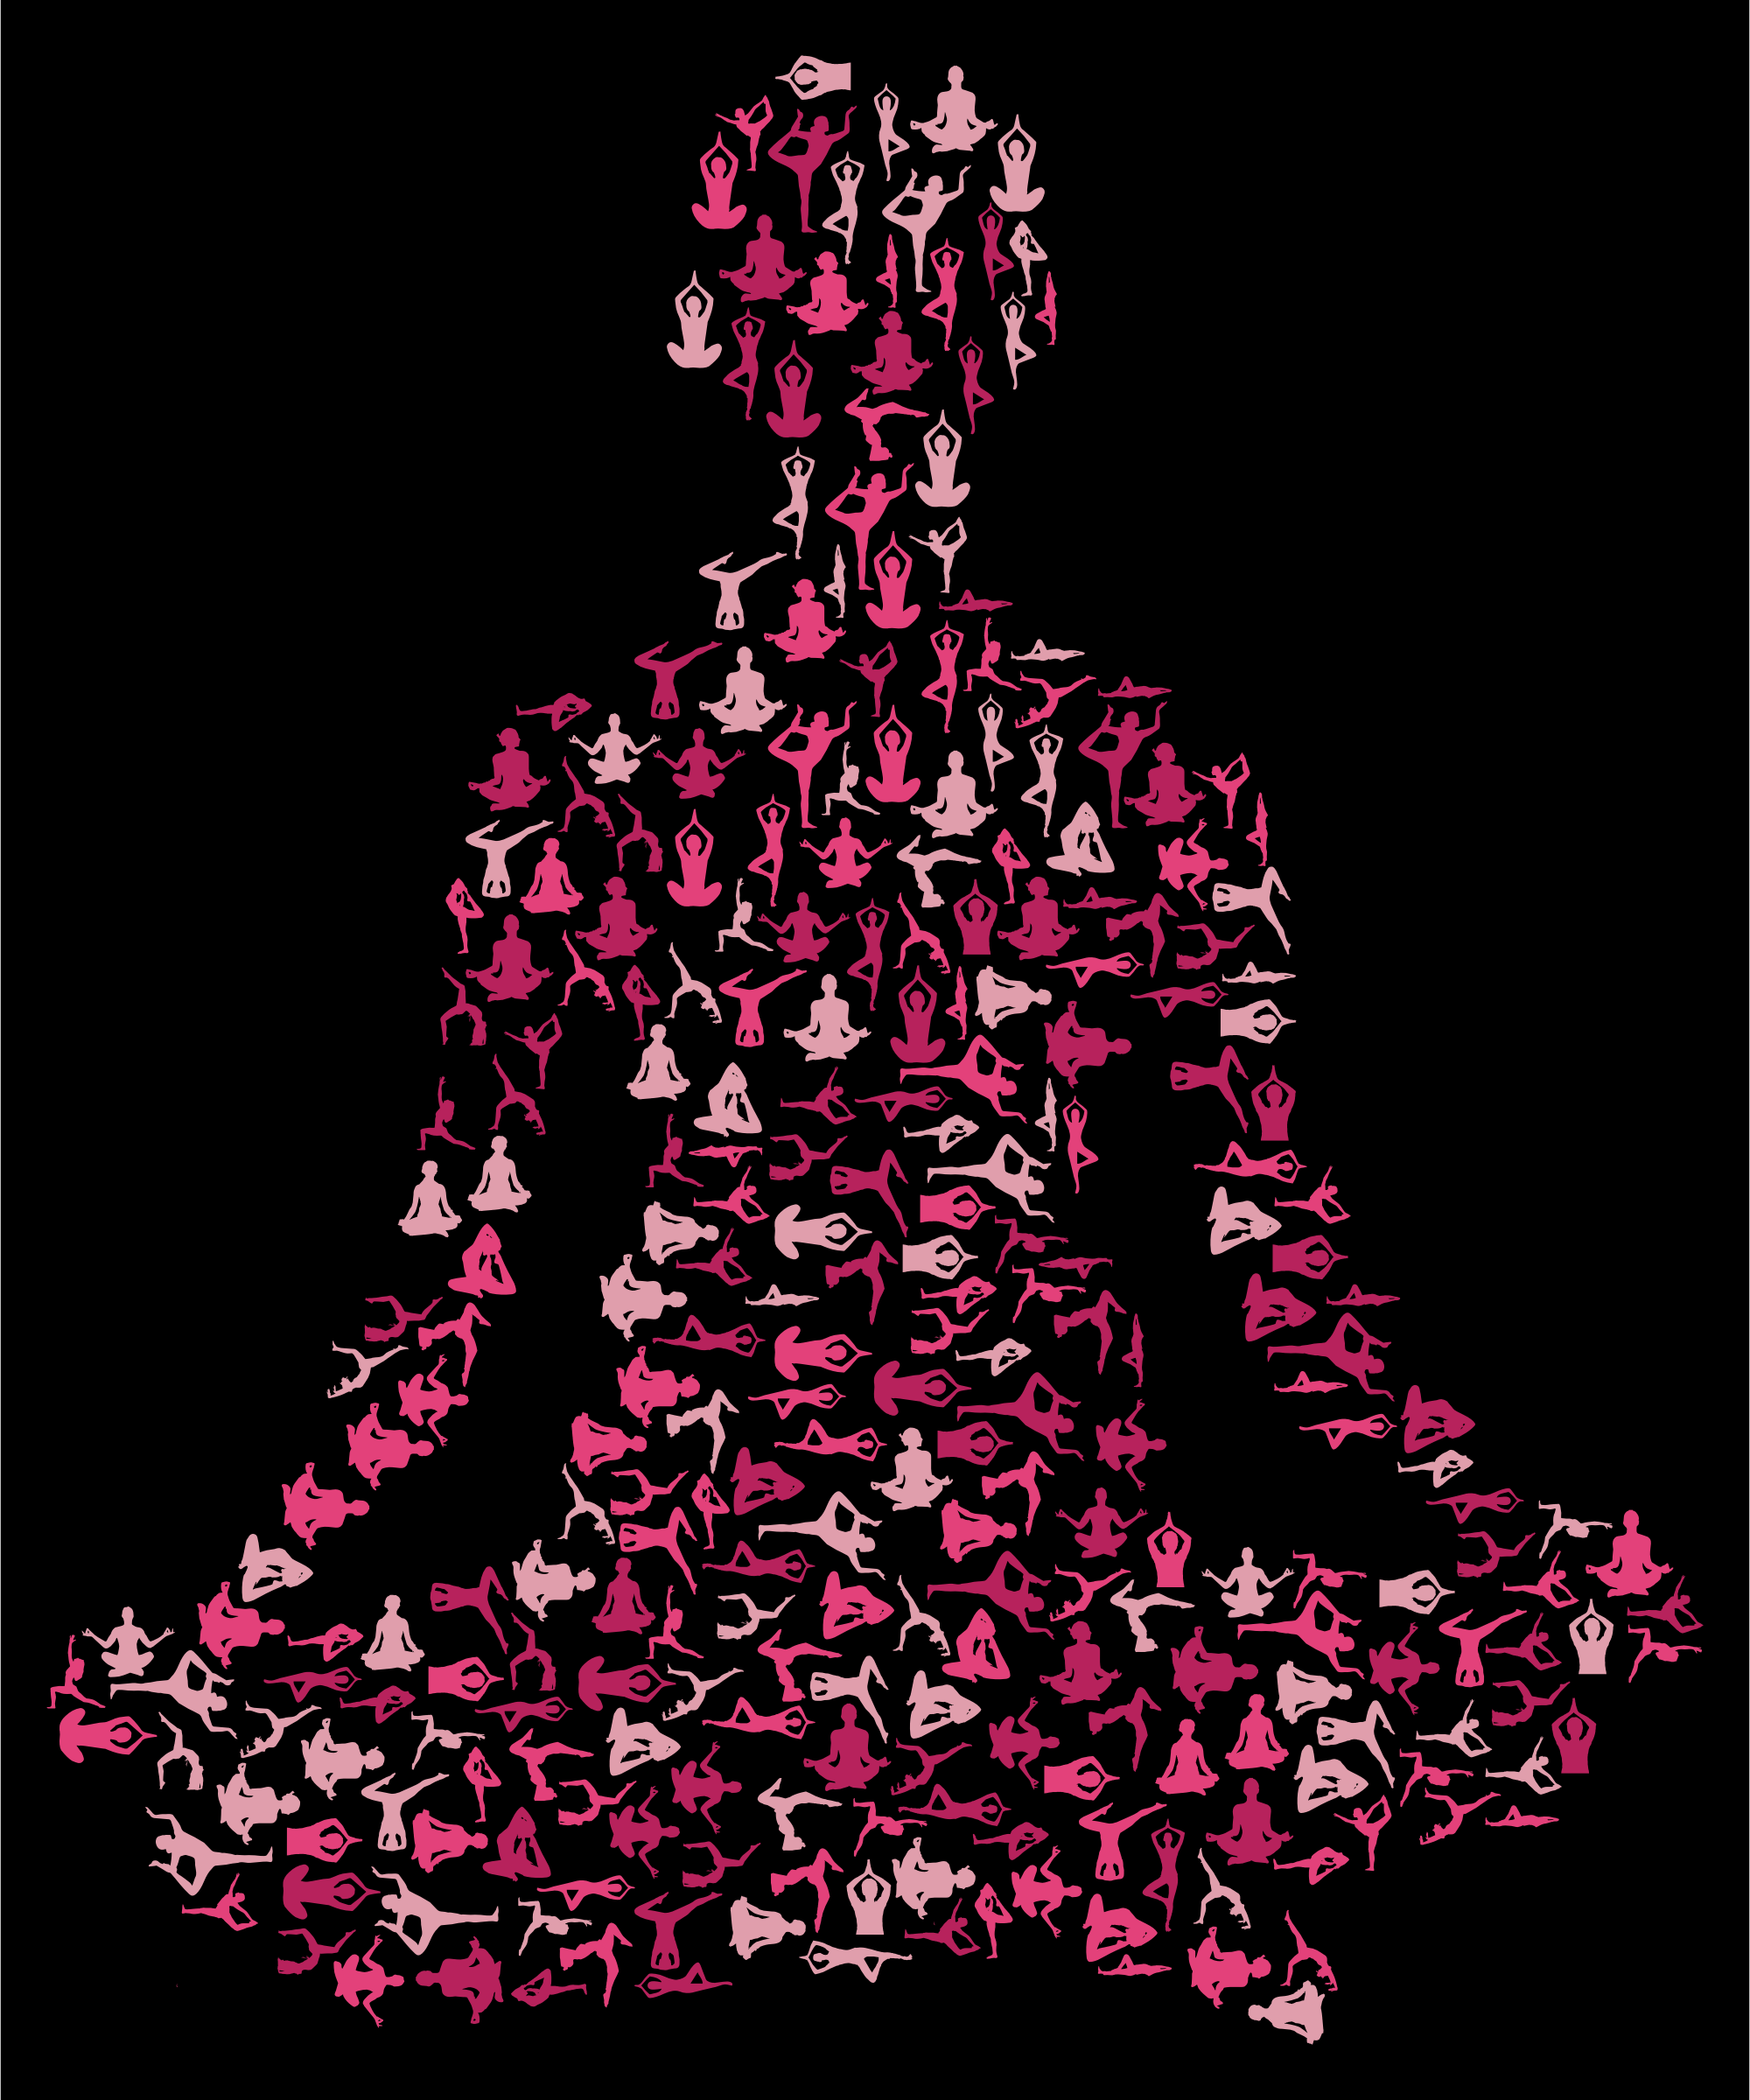 Female Yoga Pose Silhouette Fractal Variation 2 by GDJ